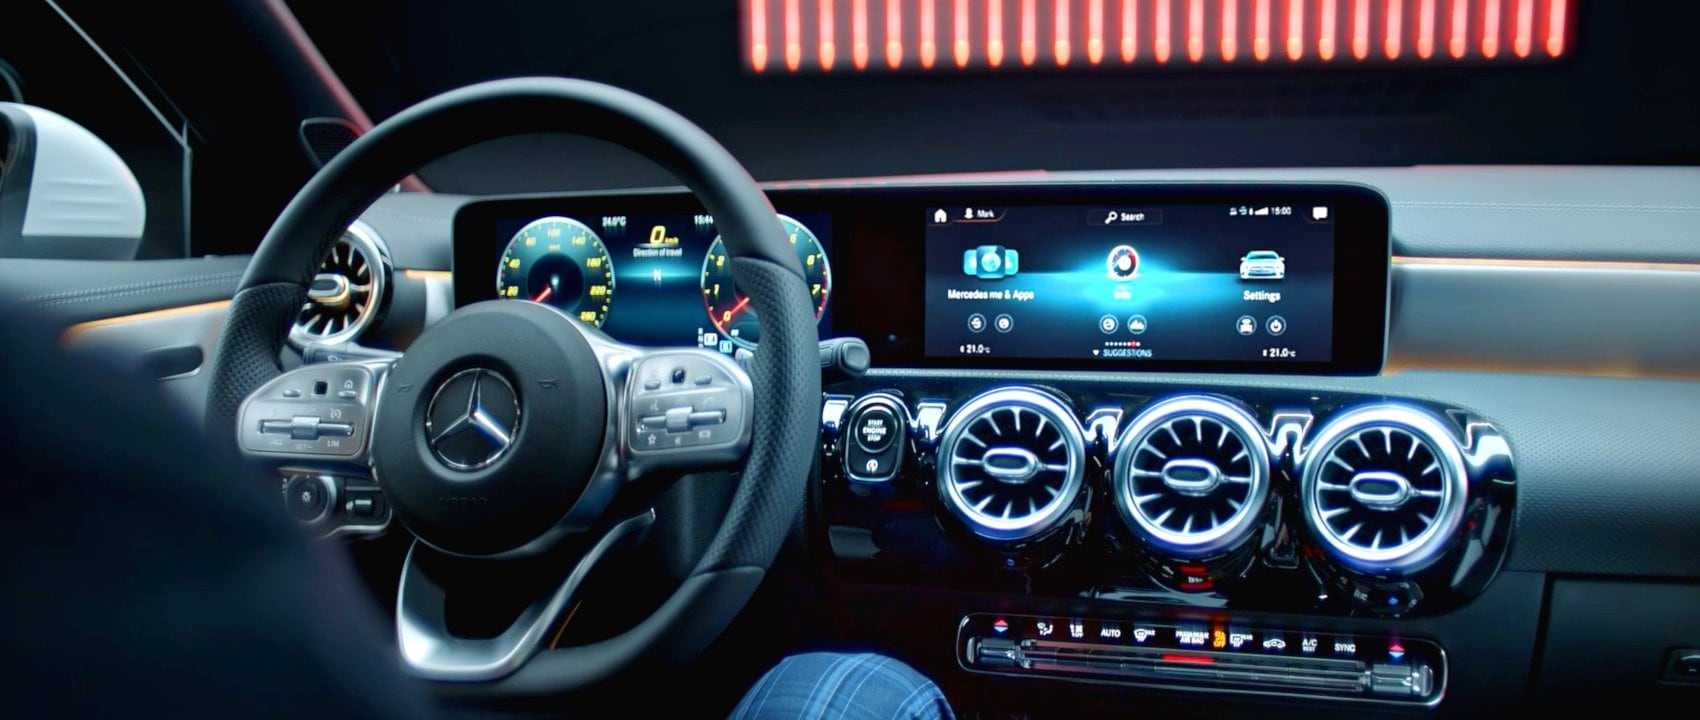 MBUX (Mercedes-Benz User Experience) in the new Mercedes-Benz CLA 250 Coupé (C 118).